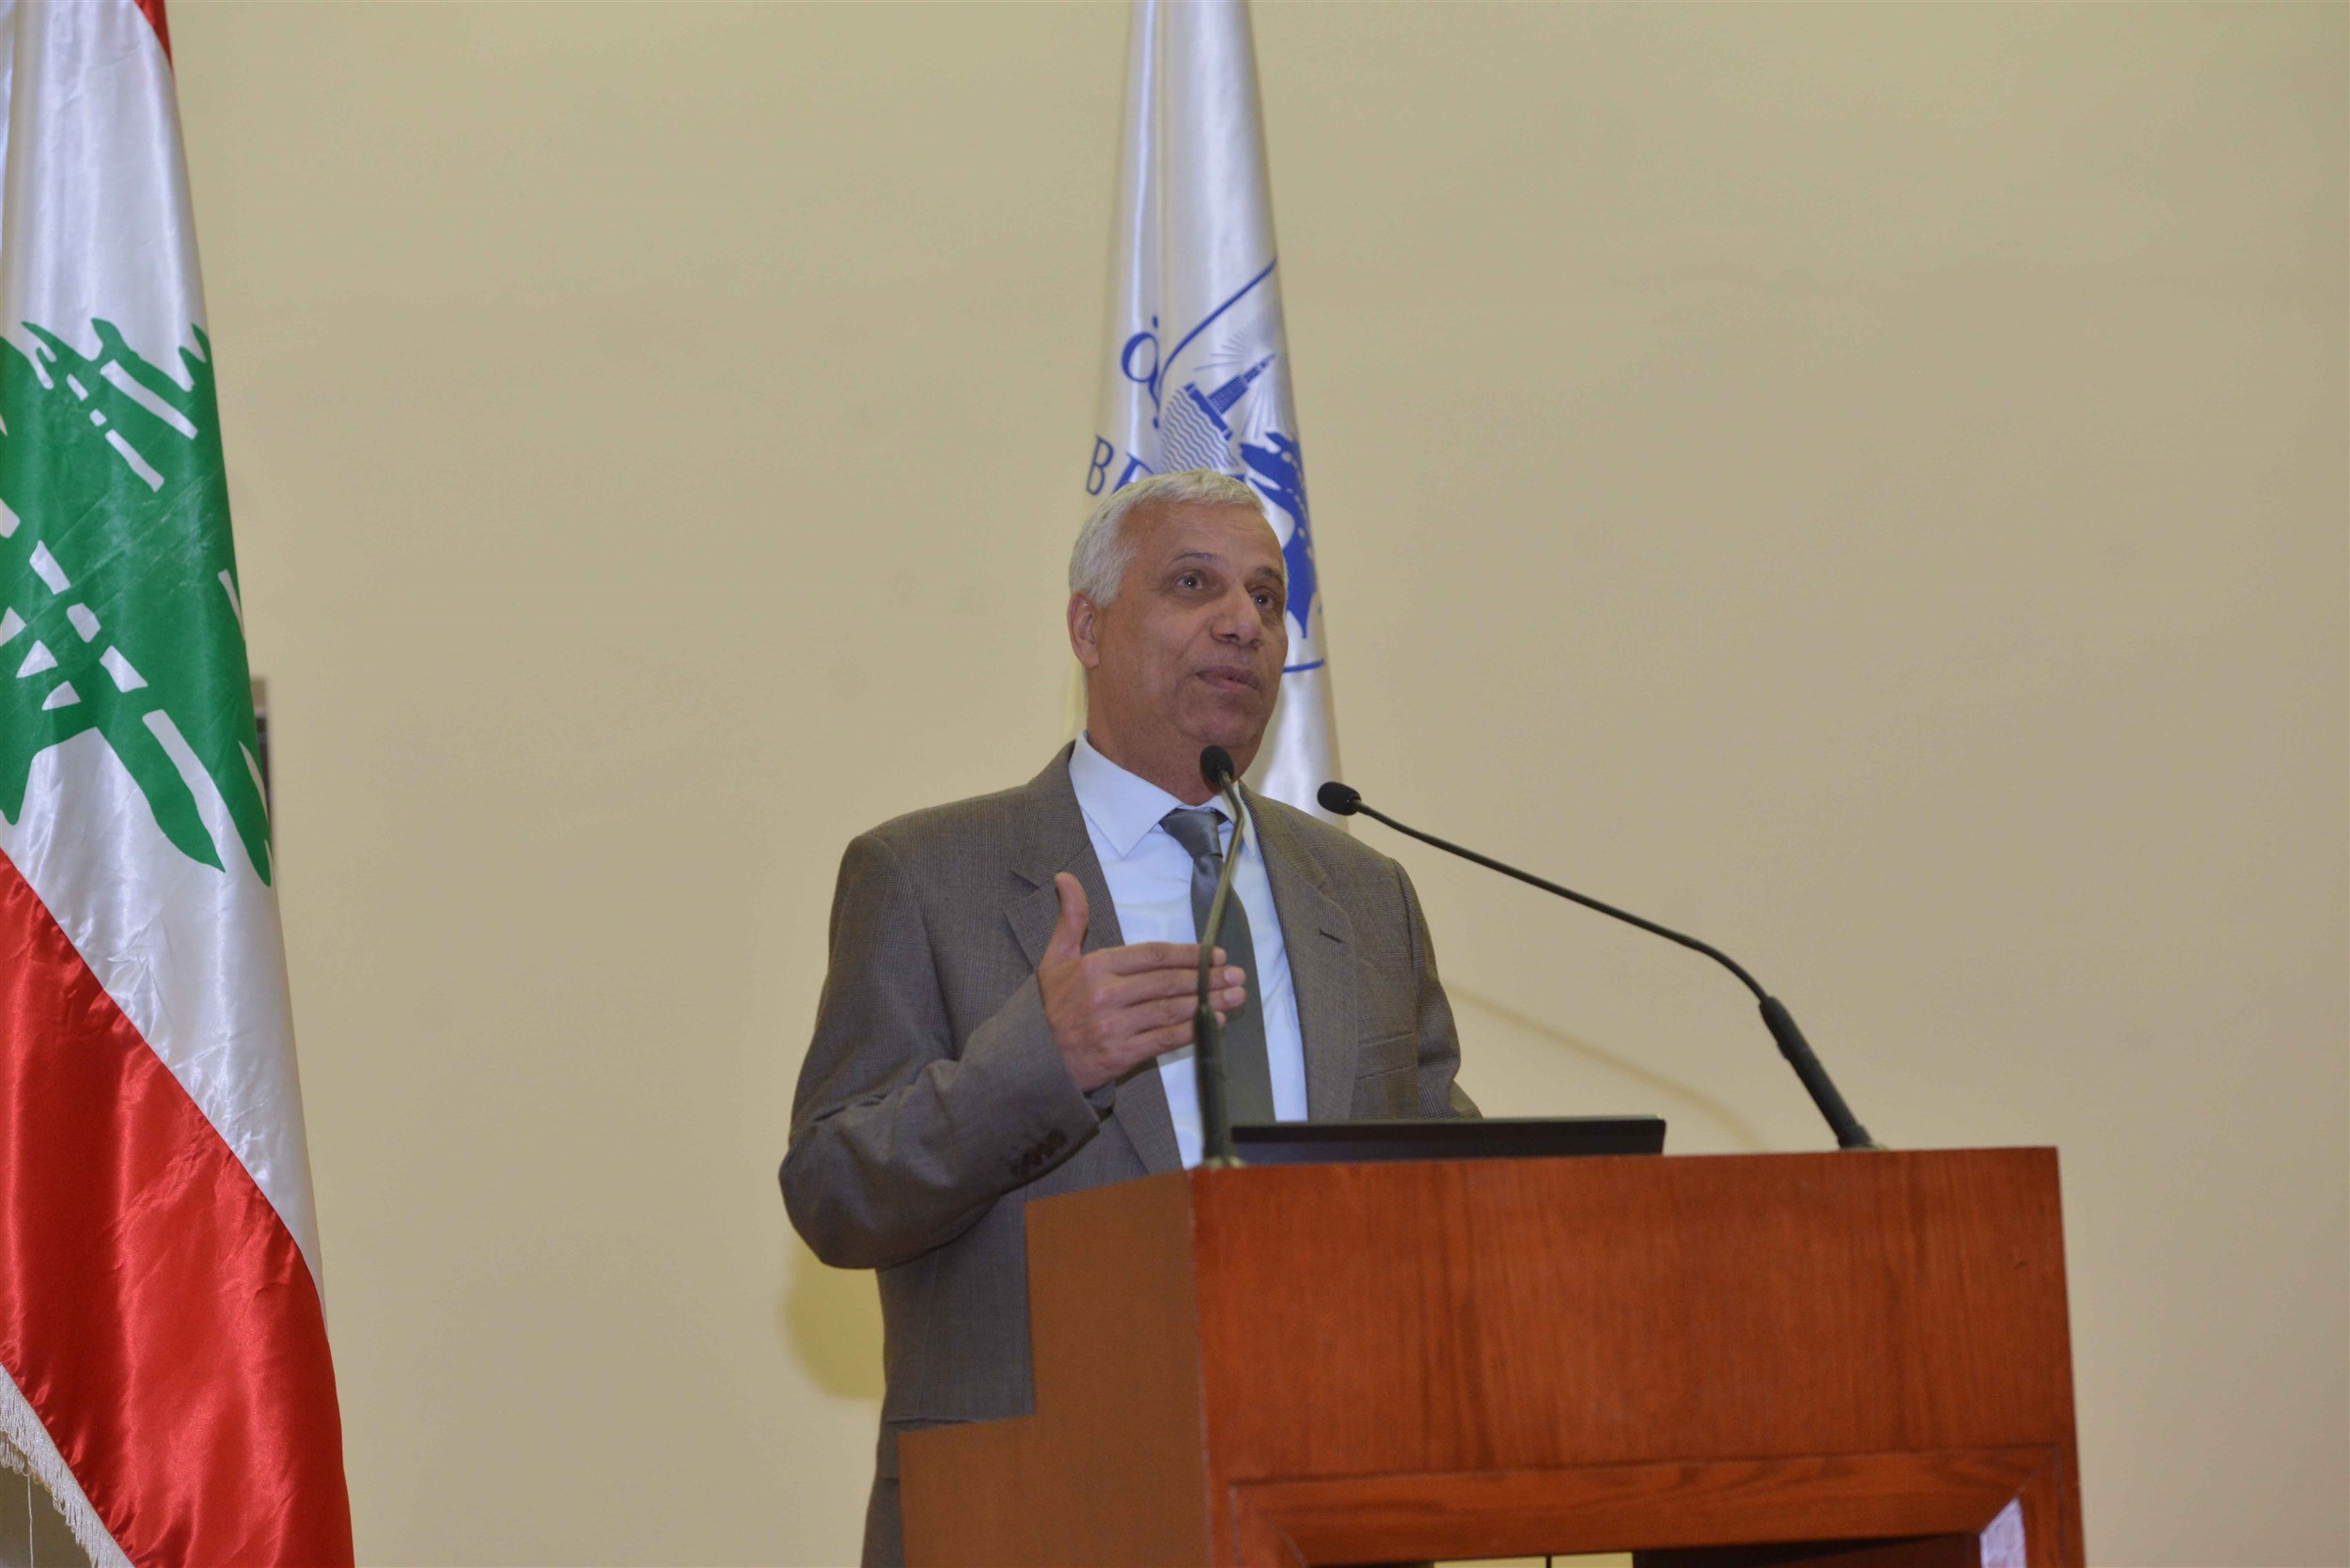 dr adel jurdi, dean of the faculty of engineering.